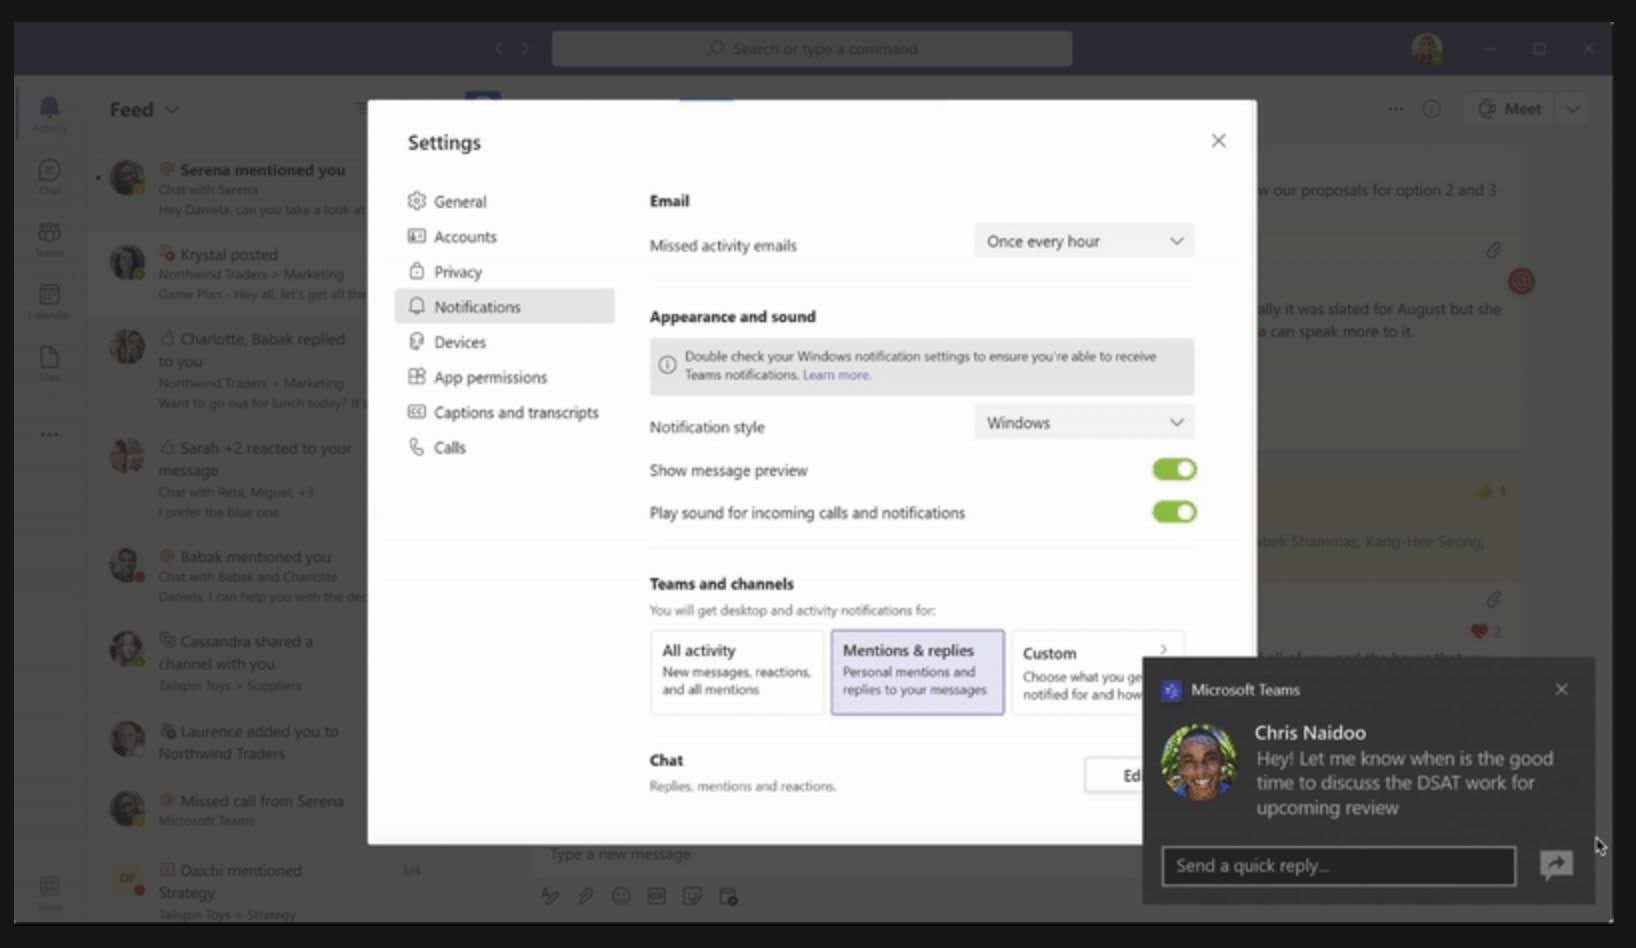 MC271919: New default native notification style setting for new Microsoft Teams users